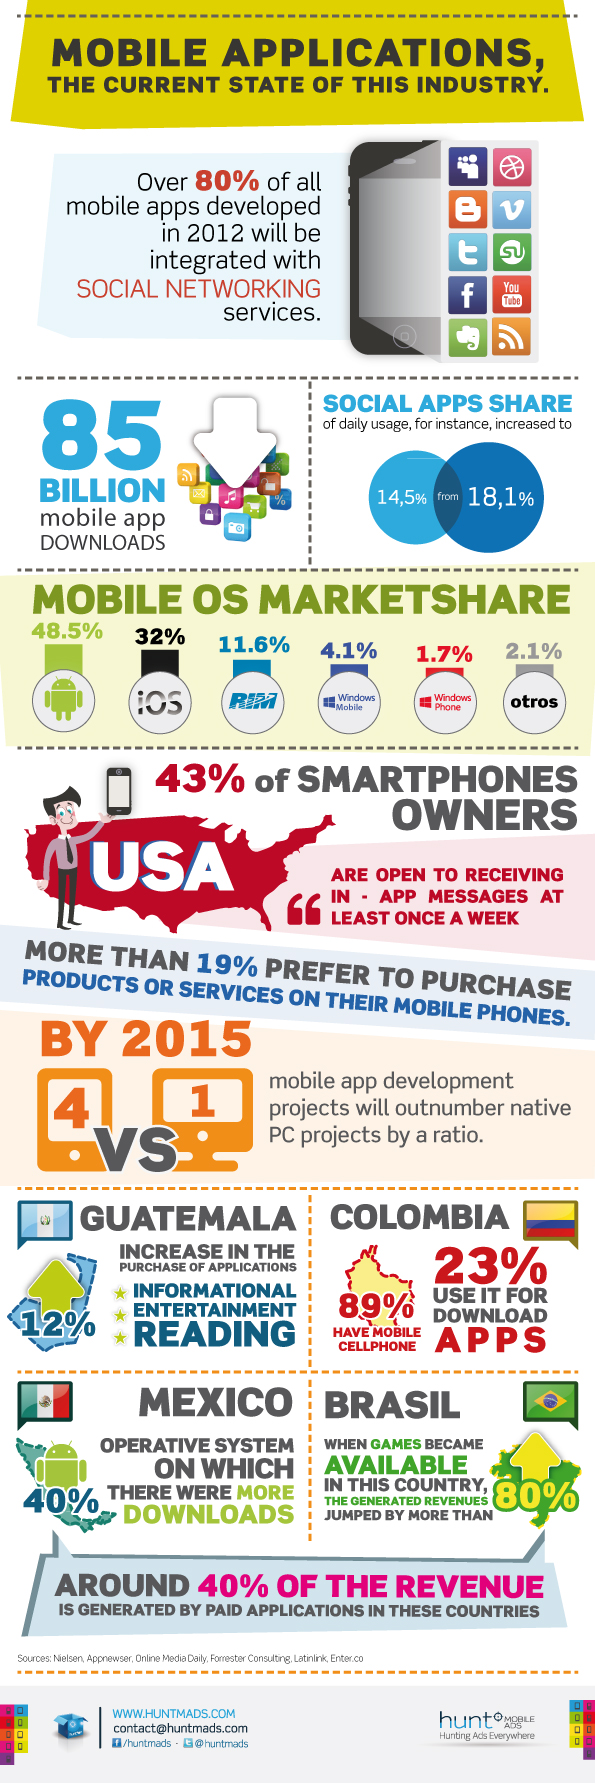 mobile-apps-infographic